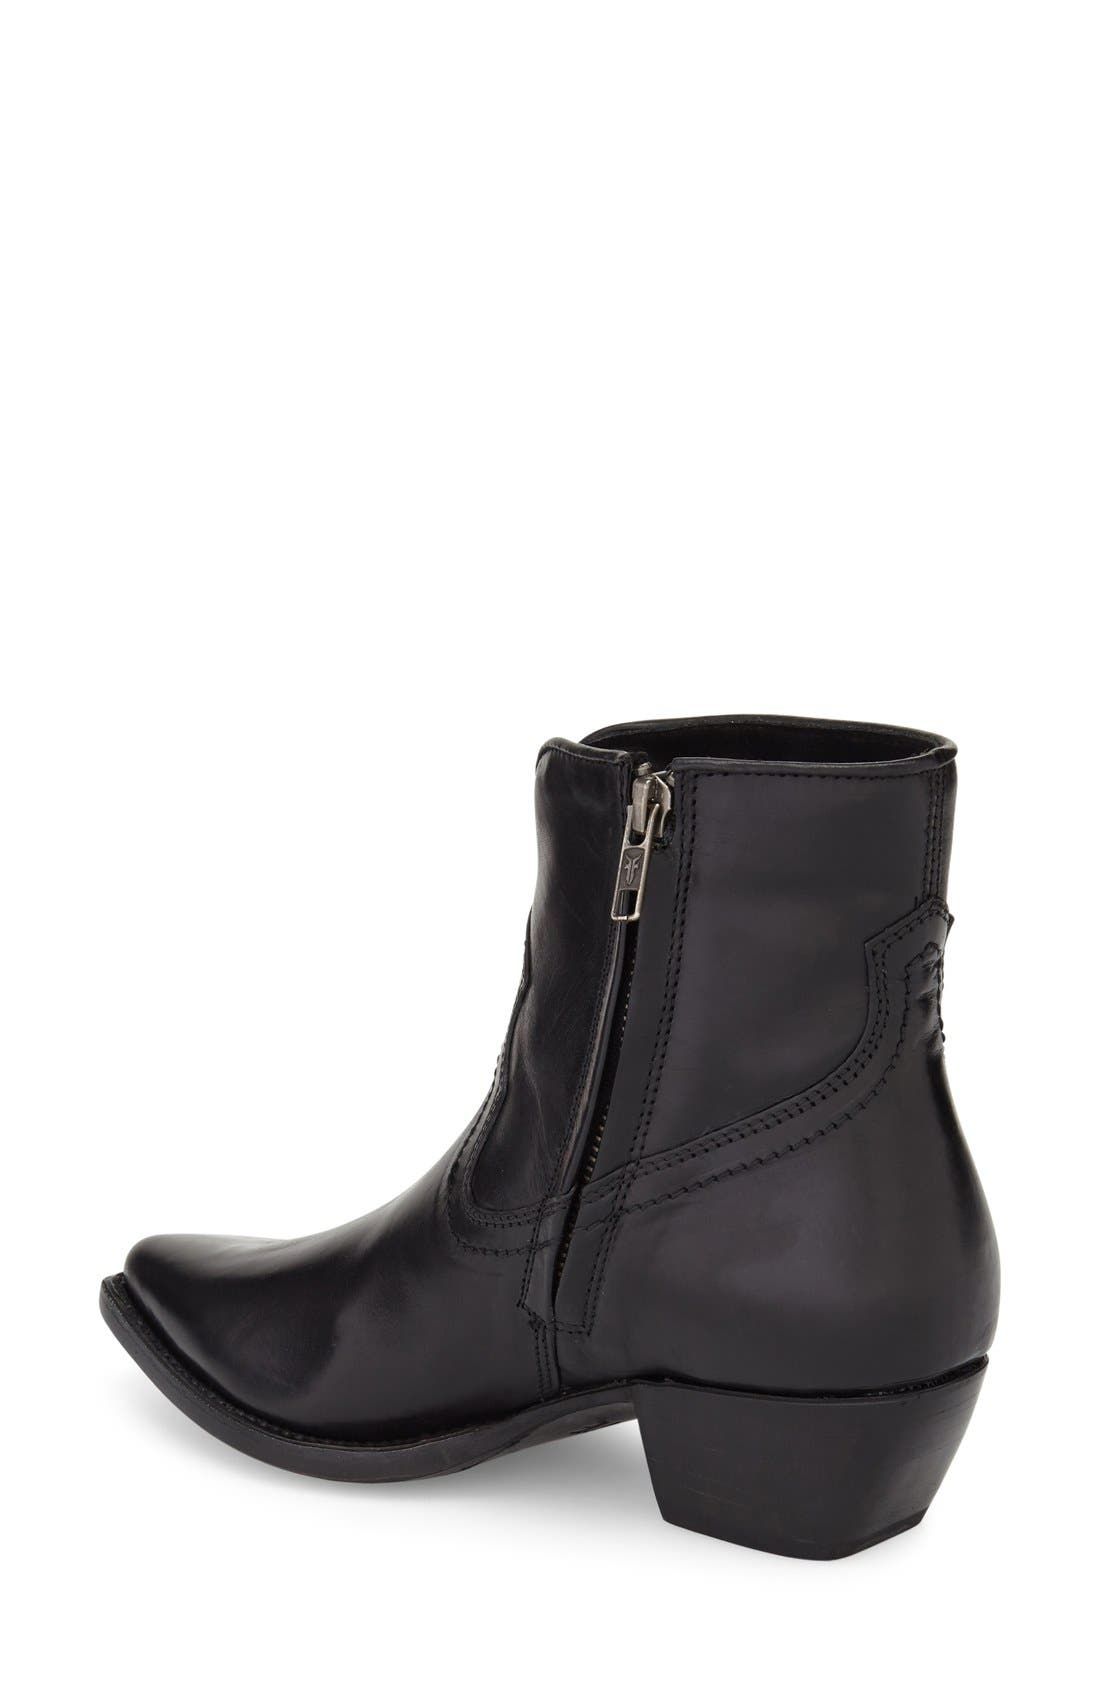 'Shane' Western Bootie,                             Alternate thumbnail 2, color,                             Black Leather